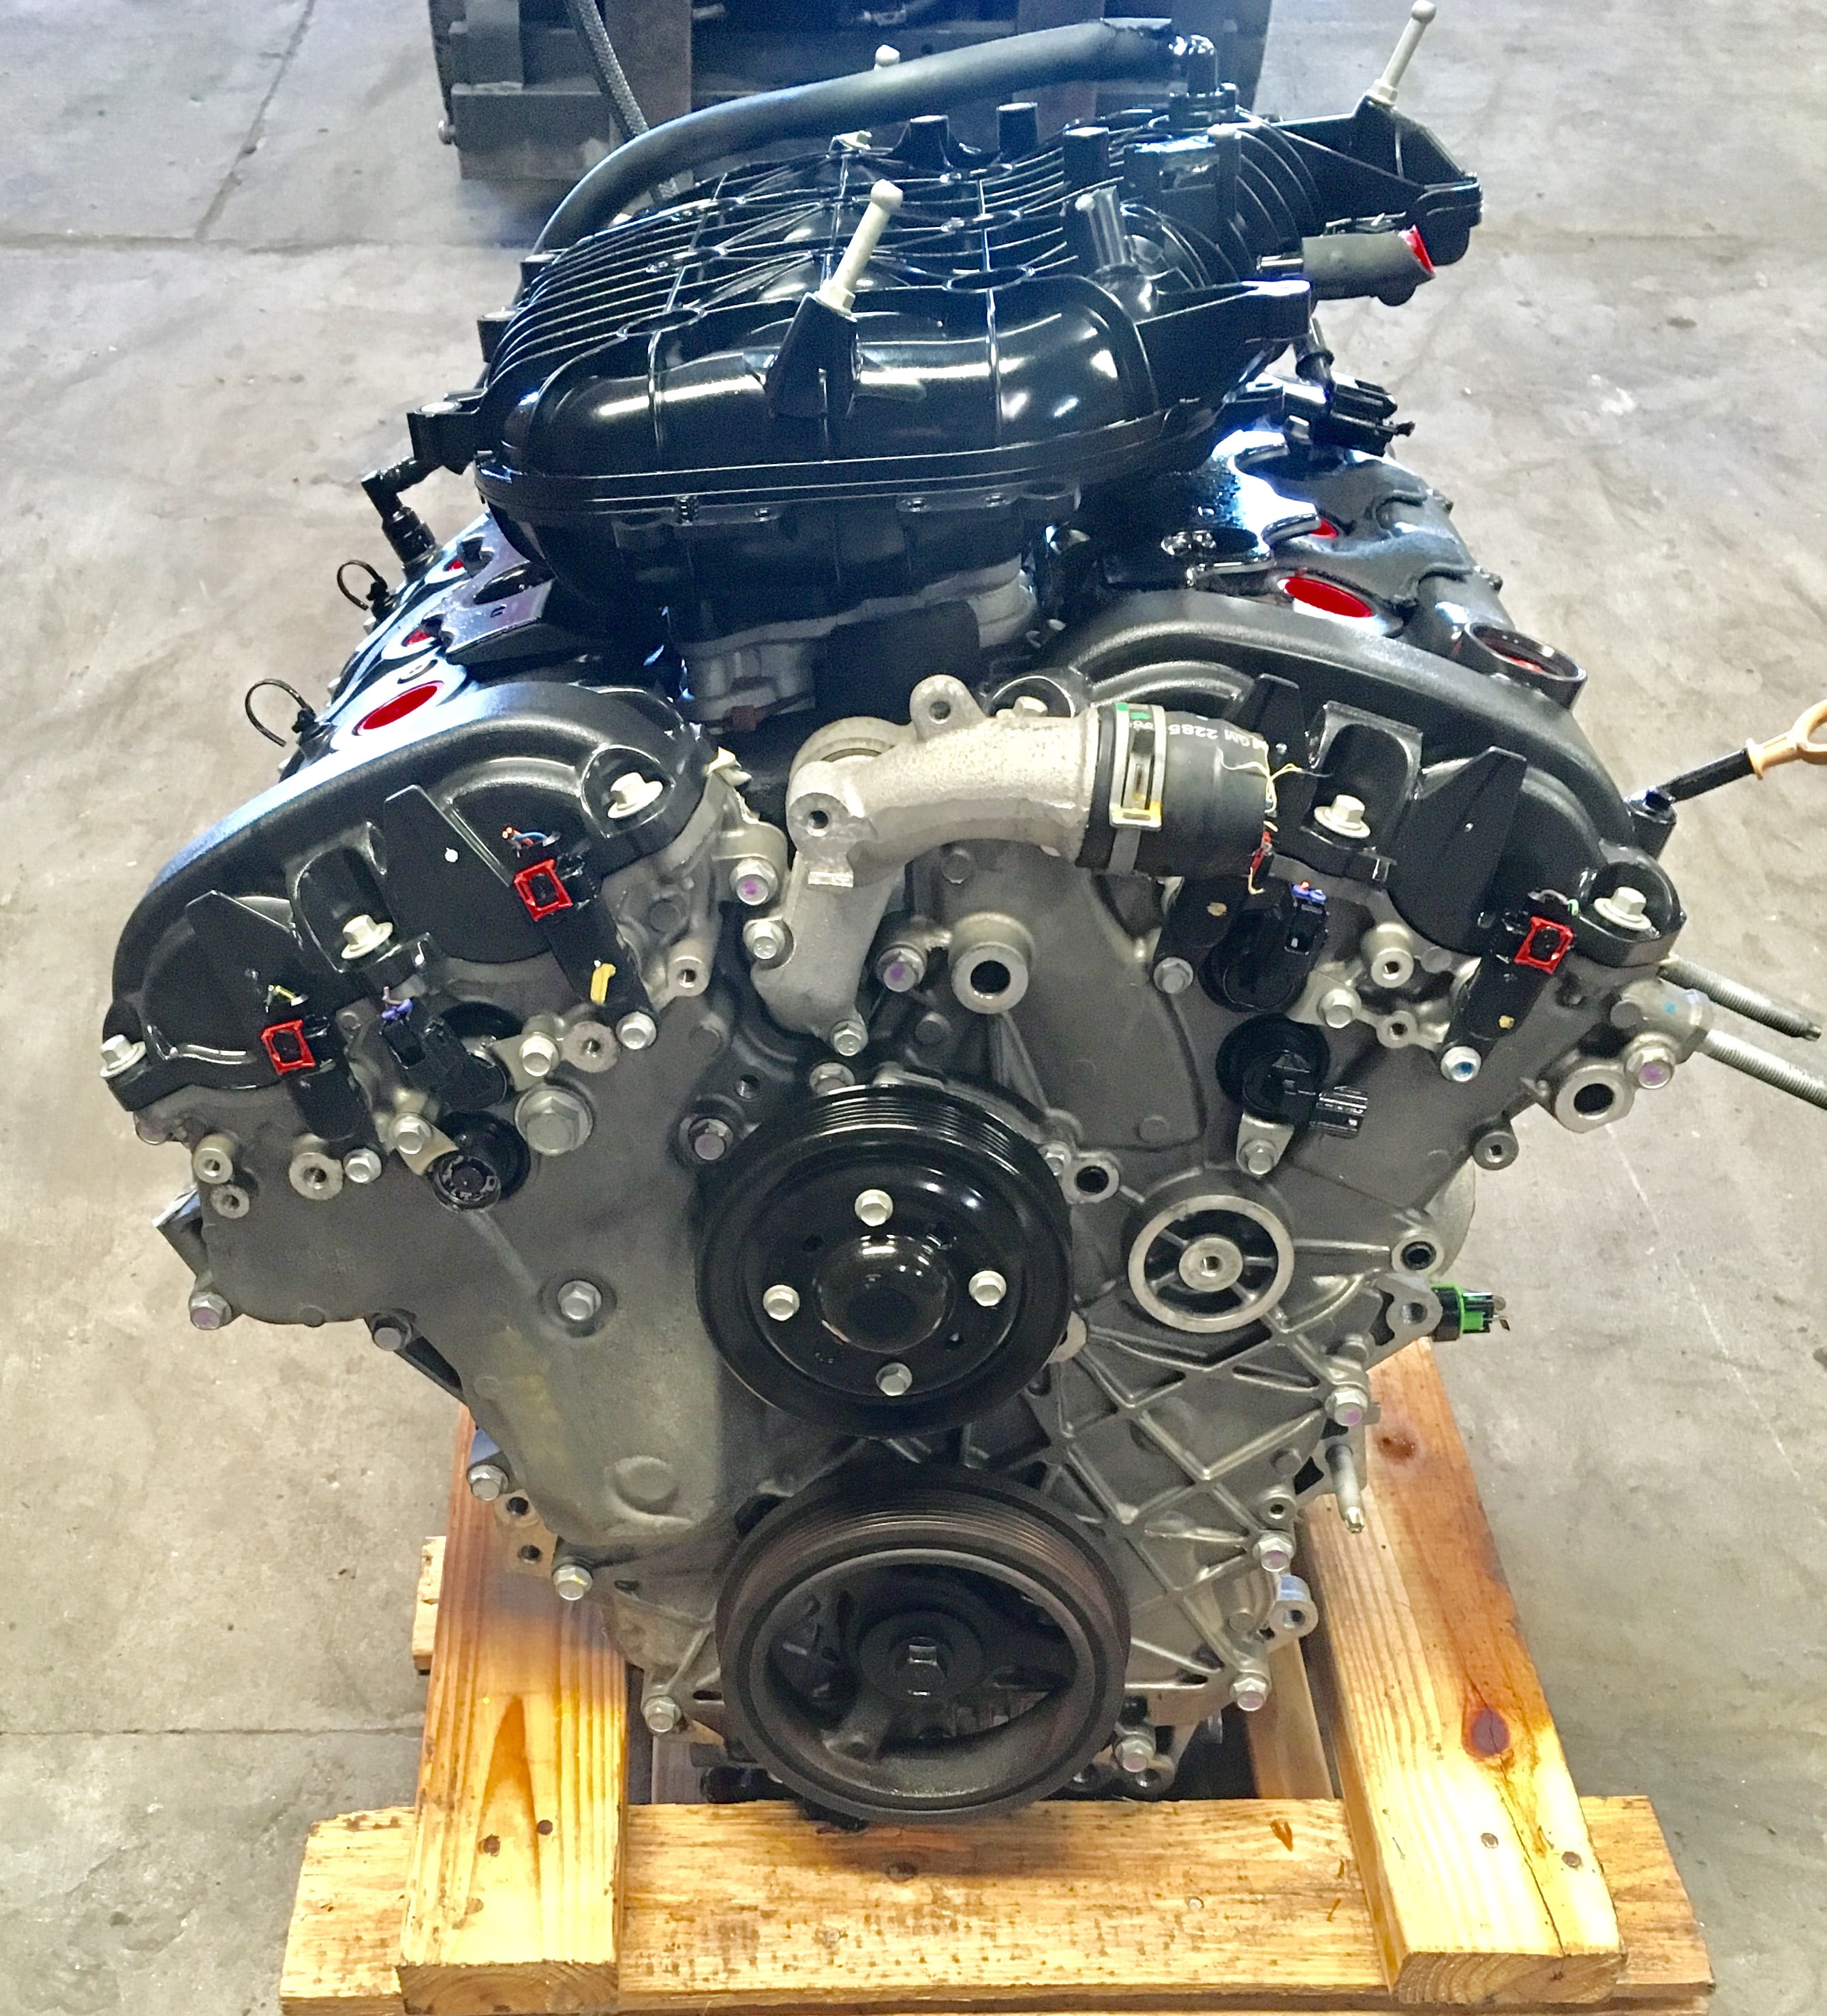 2012 Gmc Acadia Used Engine: Chevrolet Traverse GMC Acadia Buick Enclave Lacrossee